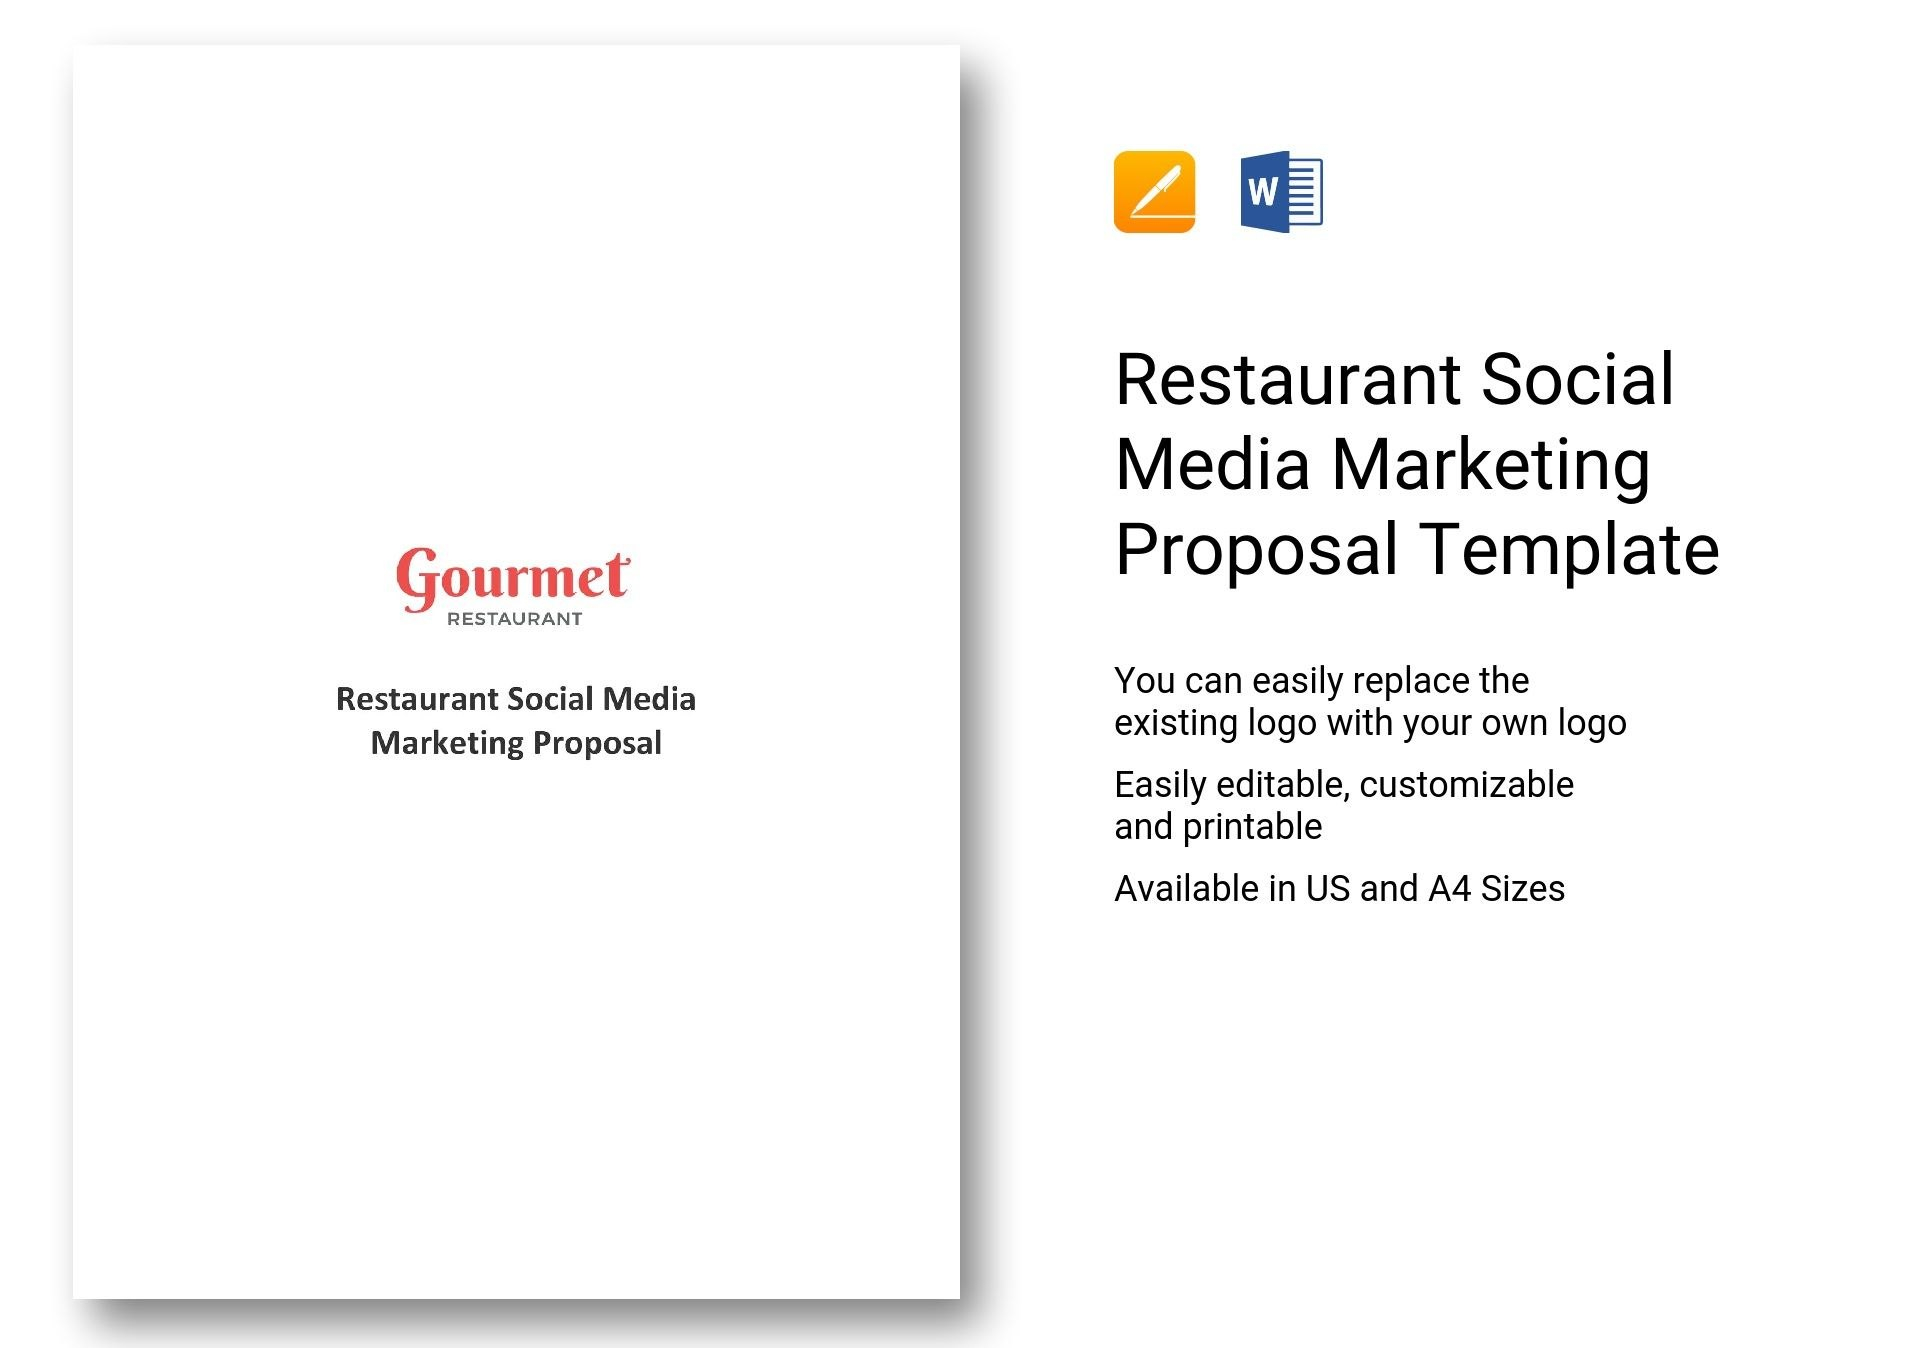 Restaurant Social Media Marketing Proposal Template In Word Apple Pages For Social Media Marketing Proposal Template